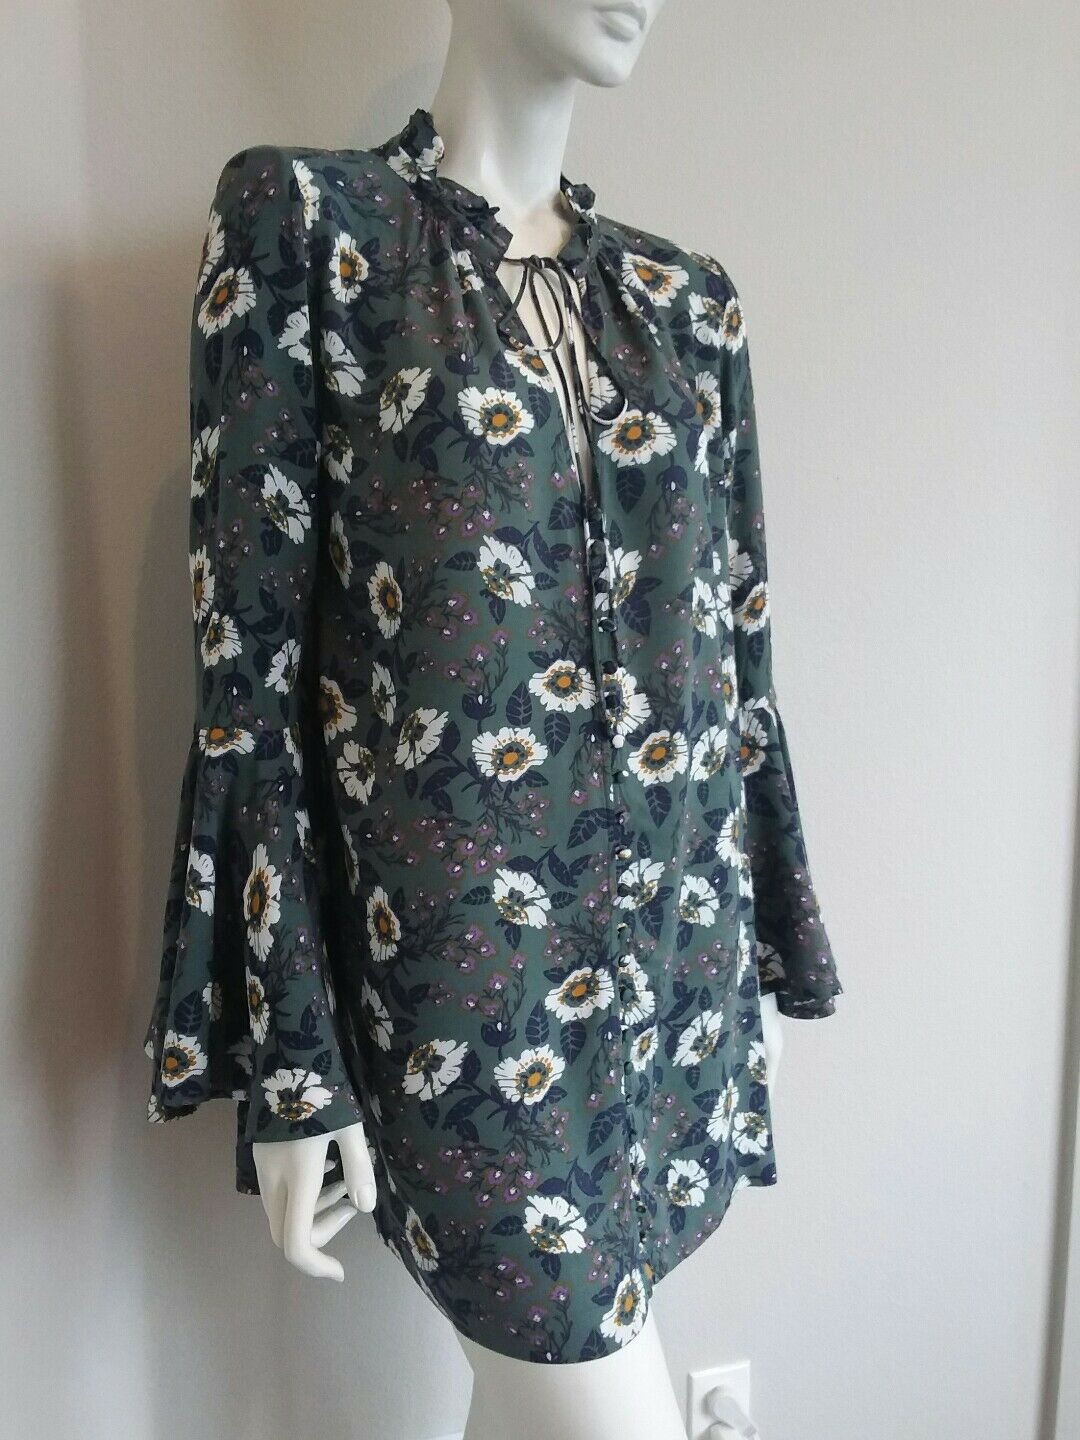 Free people button down mini dress tunic top bell sleeve sz S NWT